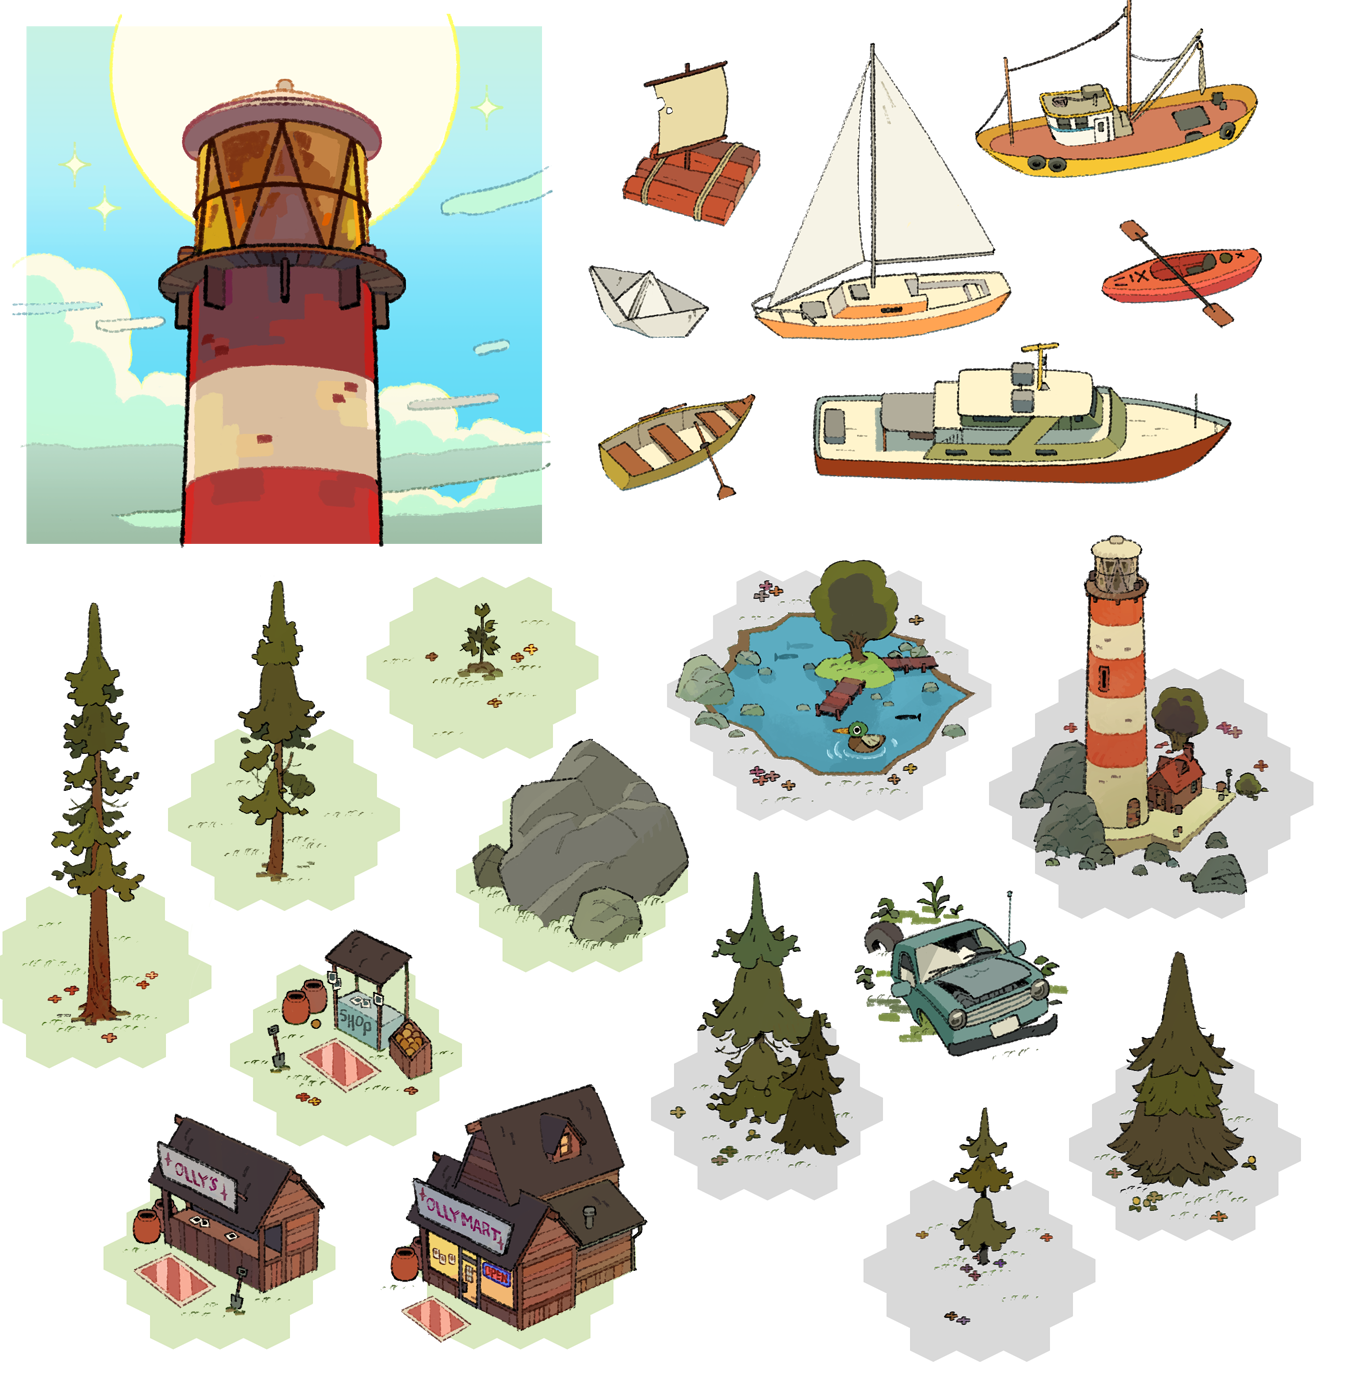 App icon and various assets.